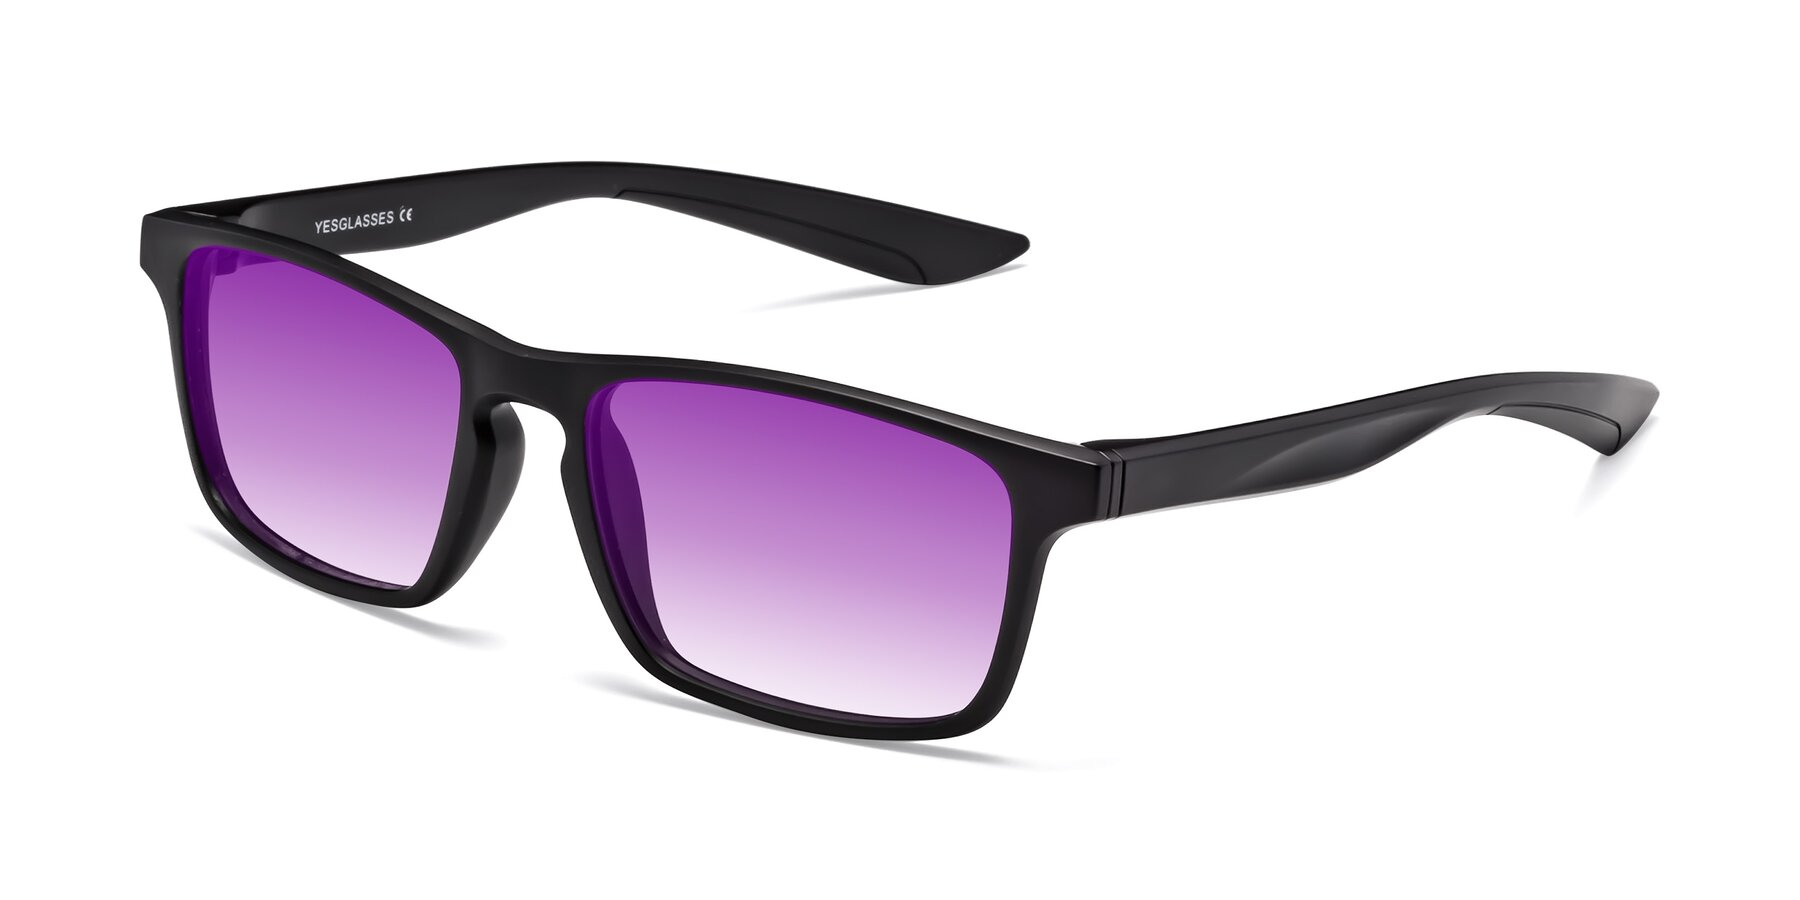 Angle of Passion in Matte Black with Purple Gradient Lenses